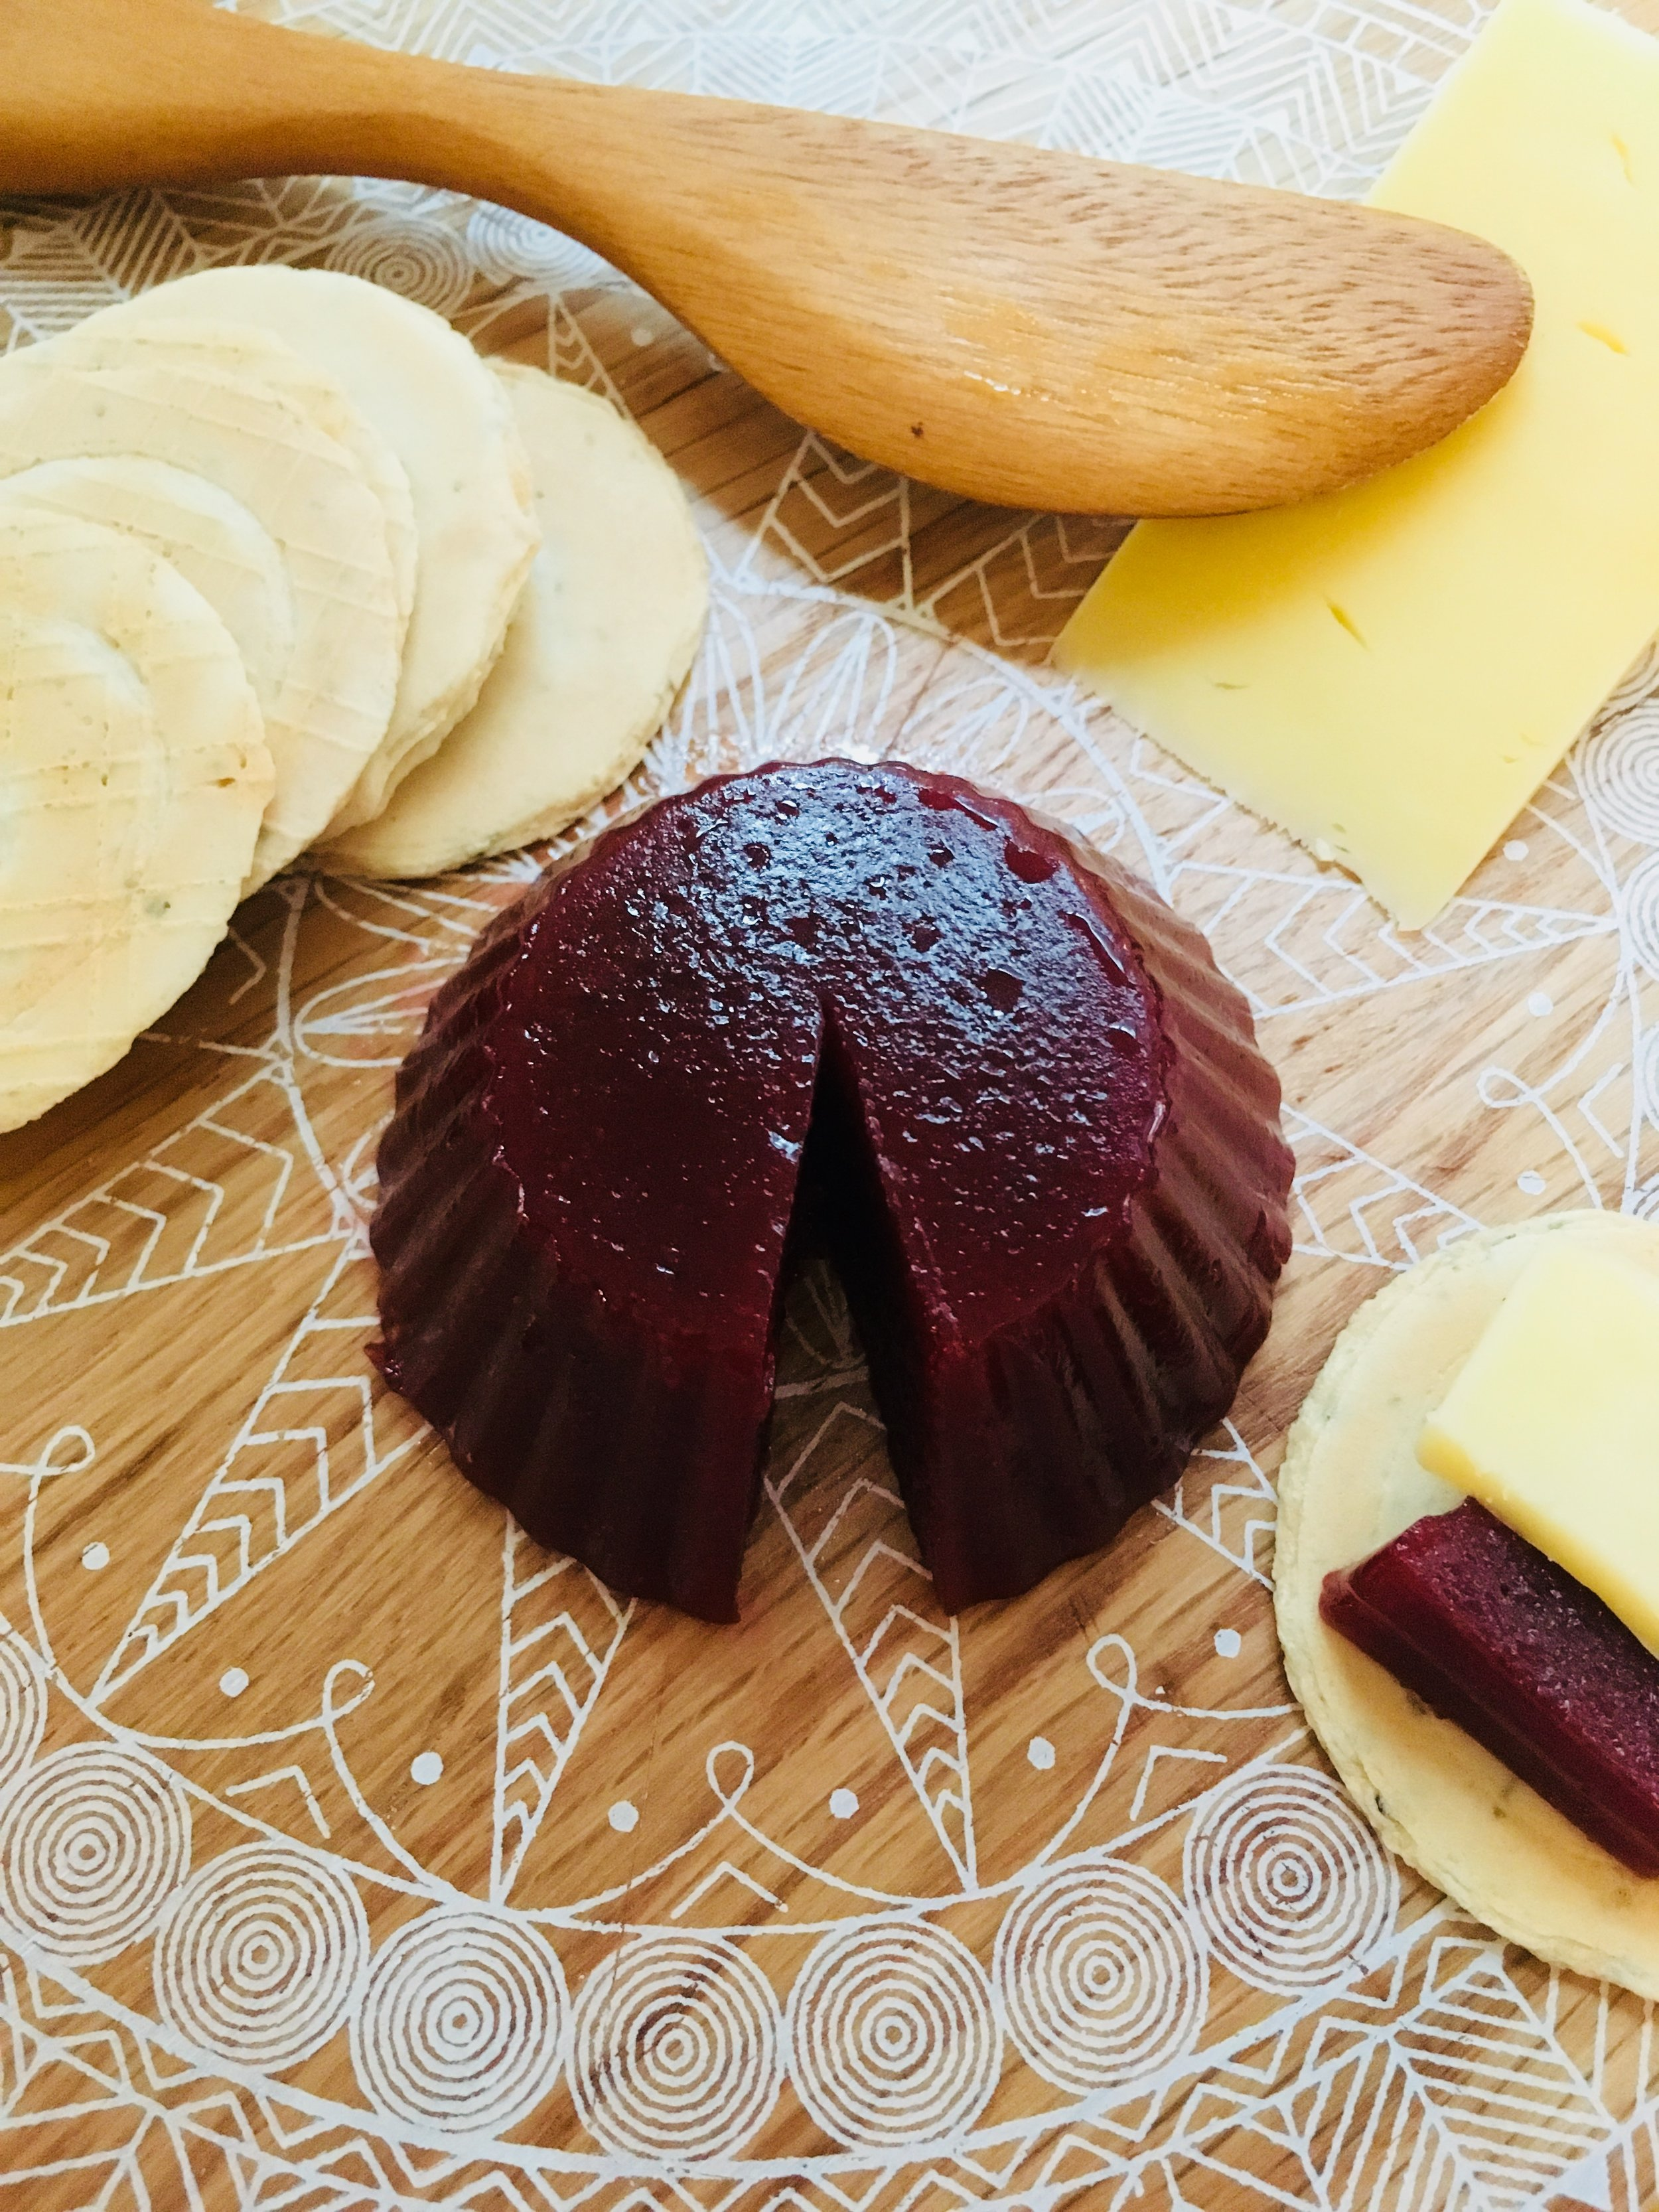 guava and rosella paste served with cheese (romeu e julieta)